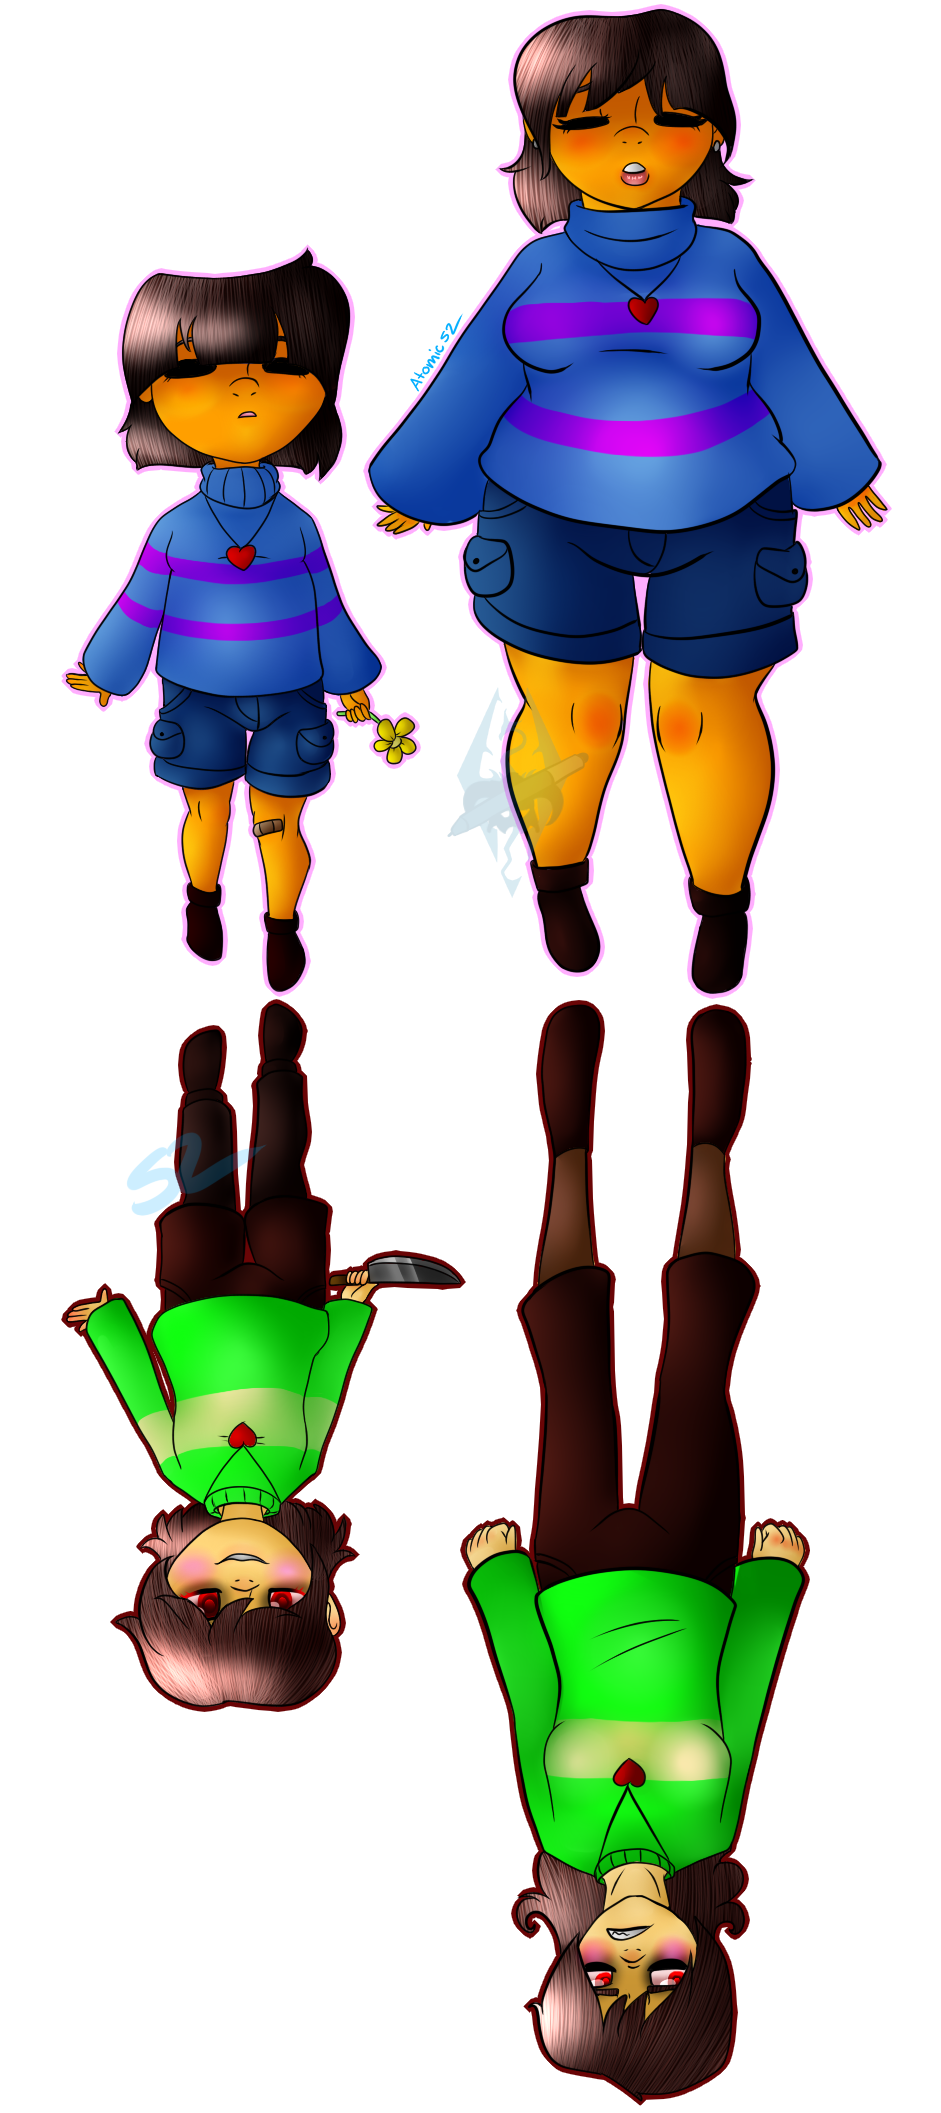 Frisk And Chara By Atomic52 On Deviantart